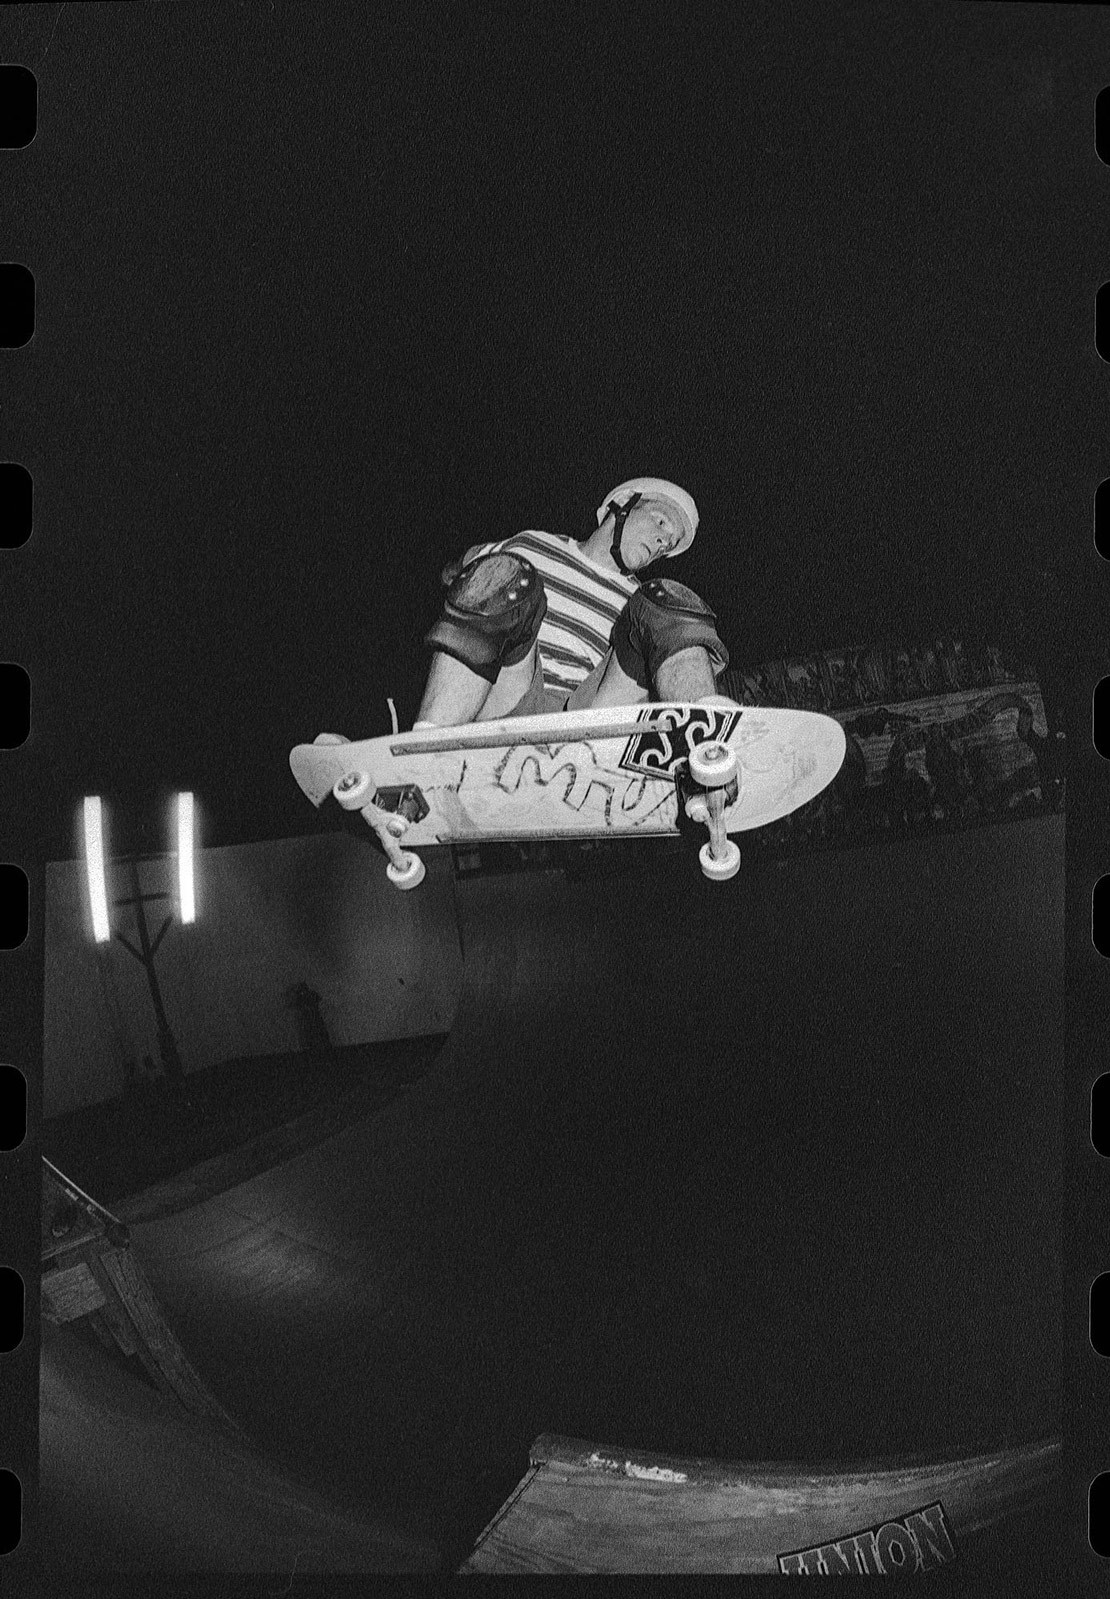 Chris Miller, Ollie Channel to Truck Bash, 1992 (?) SUAS, Houston, Texas